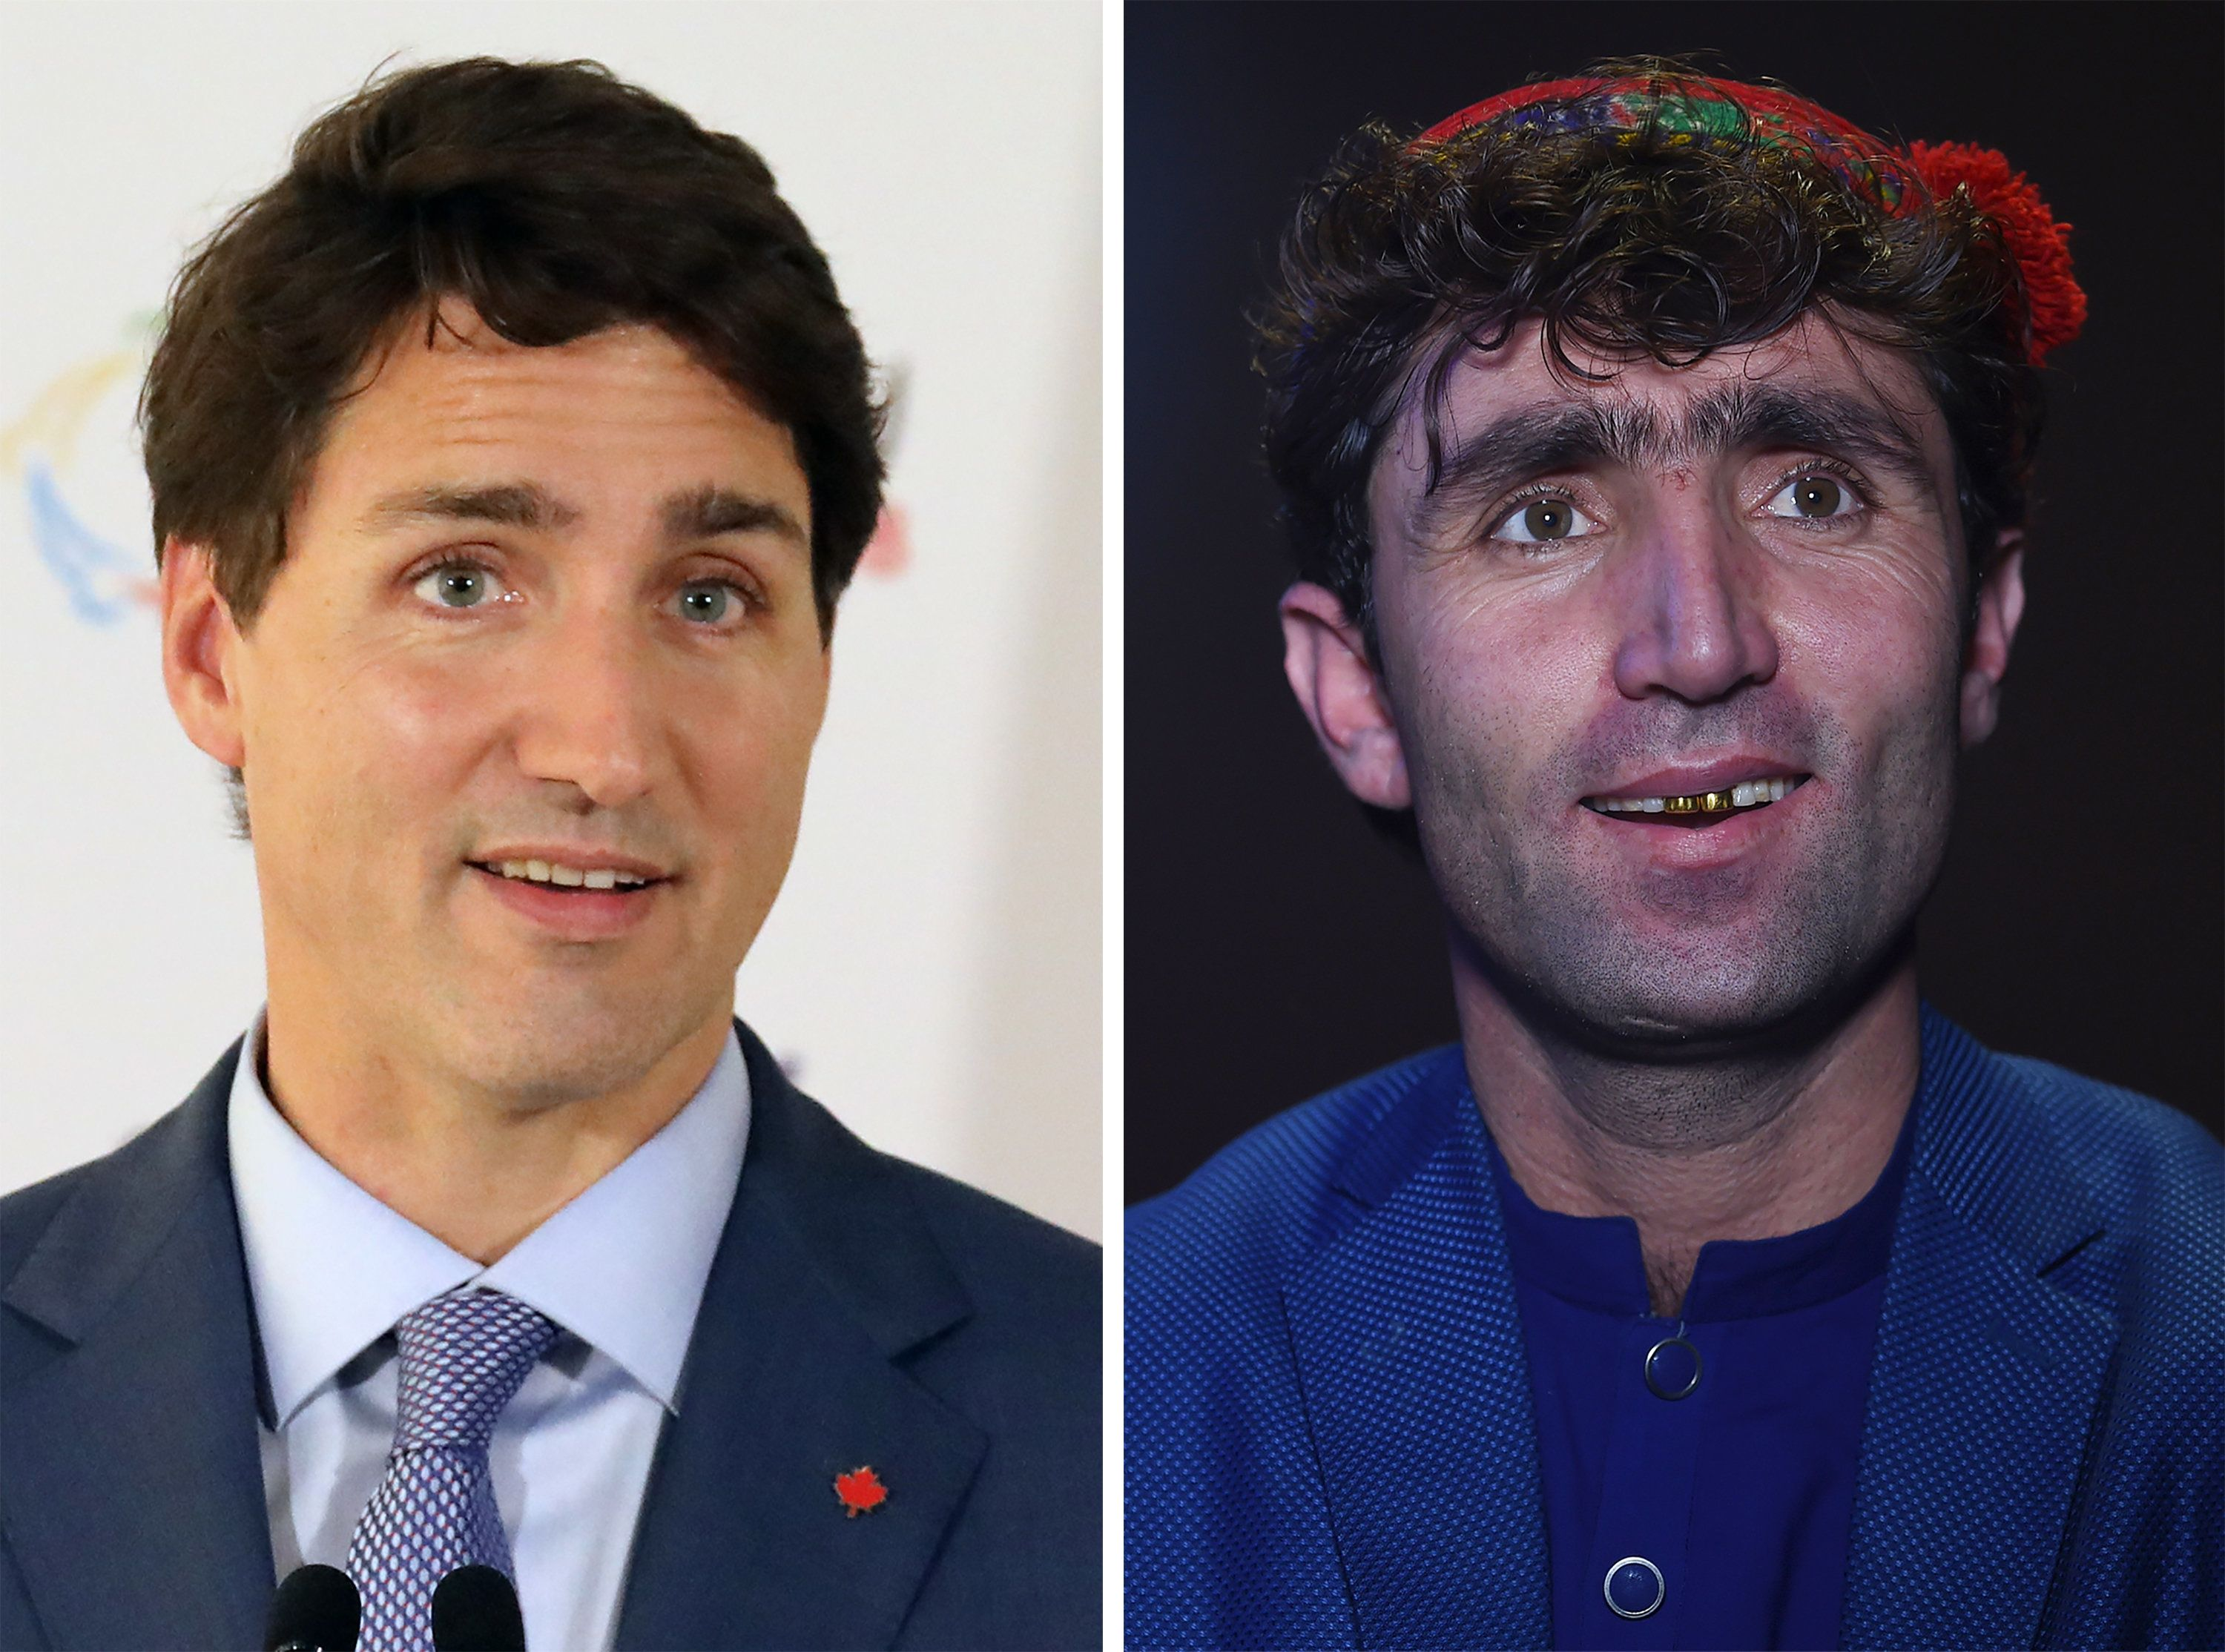 (COMBO) This combo shows a file photo taken on October 12, 2018 of Canada's Prime Minister Justin Trudeau (L) speaking at the end of the 17th Francophone countries summit in the Armenian city of Yerevan; and an image of Abdul Salam Maftoon (R), an Afghan singer and contestant of the television music competition 'Afghan Star', speaking during an interview with AFP in Kabul on January 13, 2019. - An Afghan talent show contestant's striking resemblance to Canadian Prime Minister Justin Trudeau has turned him into an unlikely celebrity in the war-torn country -- and potentially given him the winning edge. (Photo by WAKIL KOHSAR and Ludovic MARIN / AFP) / TO GO WITH Afghanistan-entertainment-television-offbeat,INTERVIEW by Allison Jackson        (Photo credit should read WAKIL KOHSAR,LUDOVIC MARIN/AFP/Getty Images)